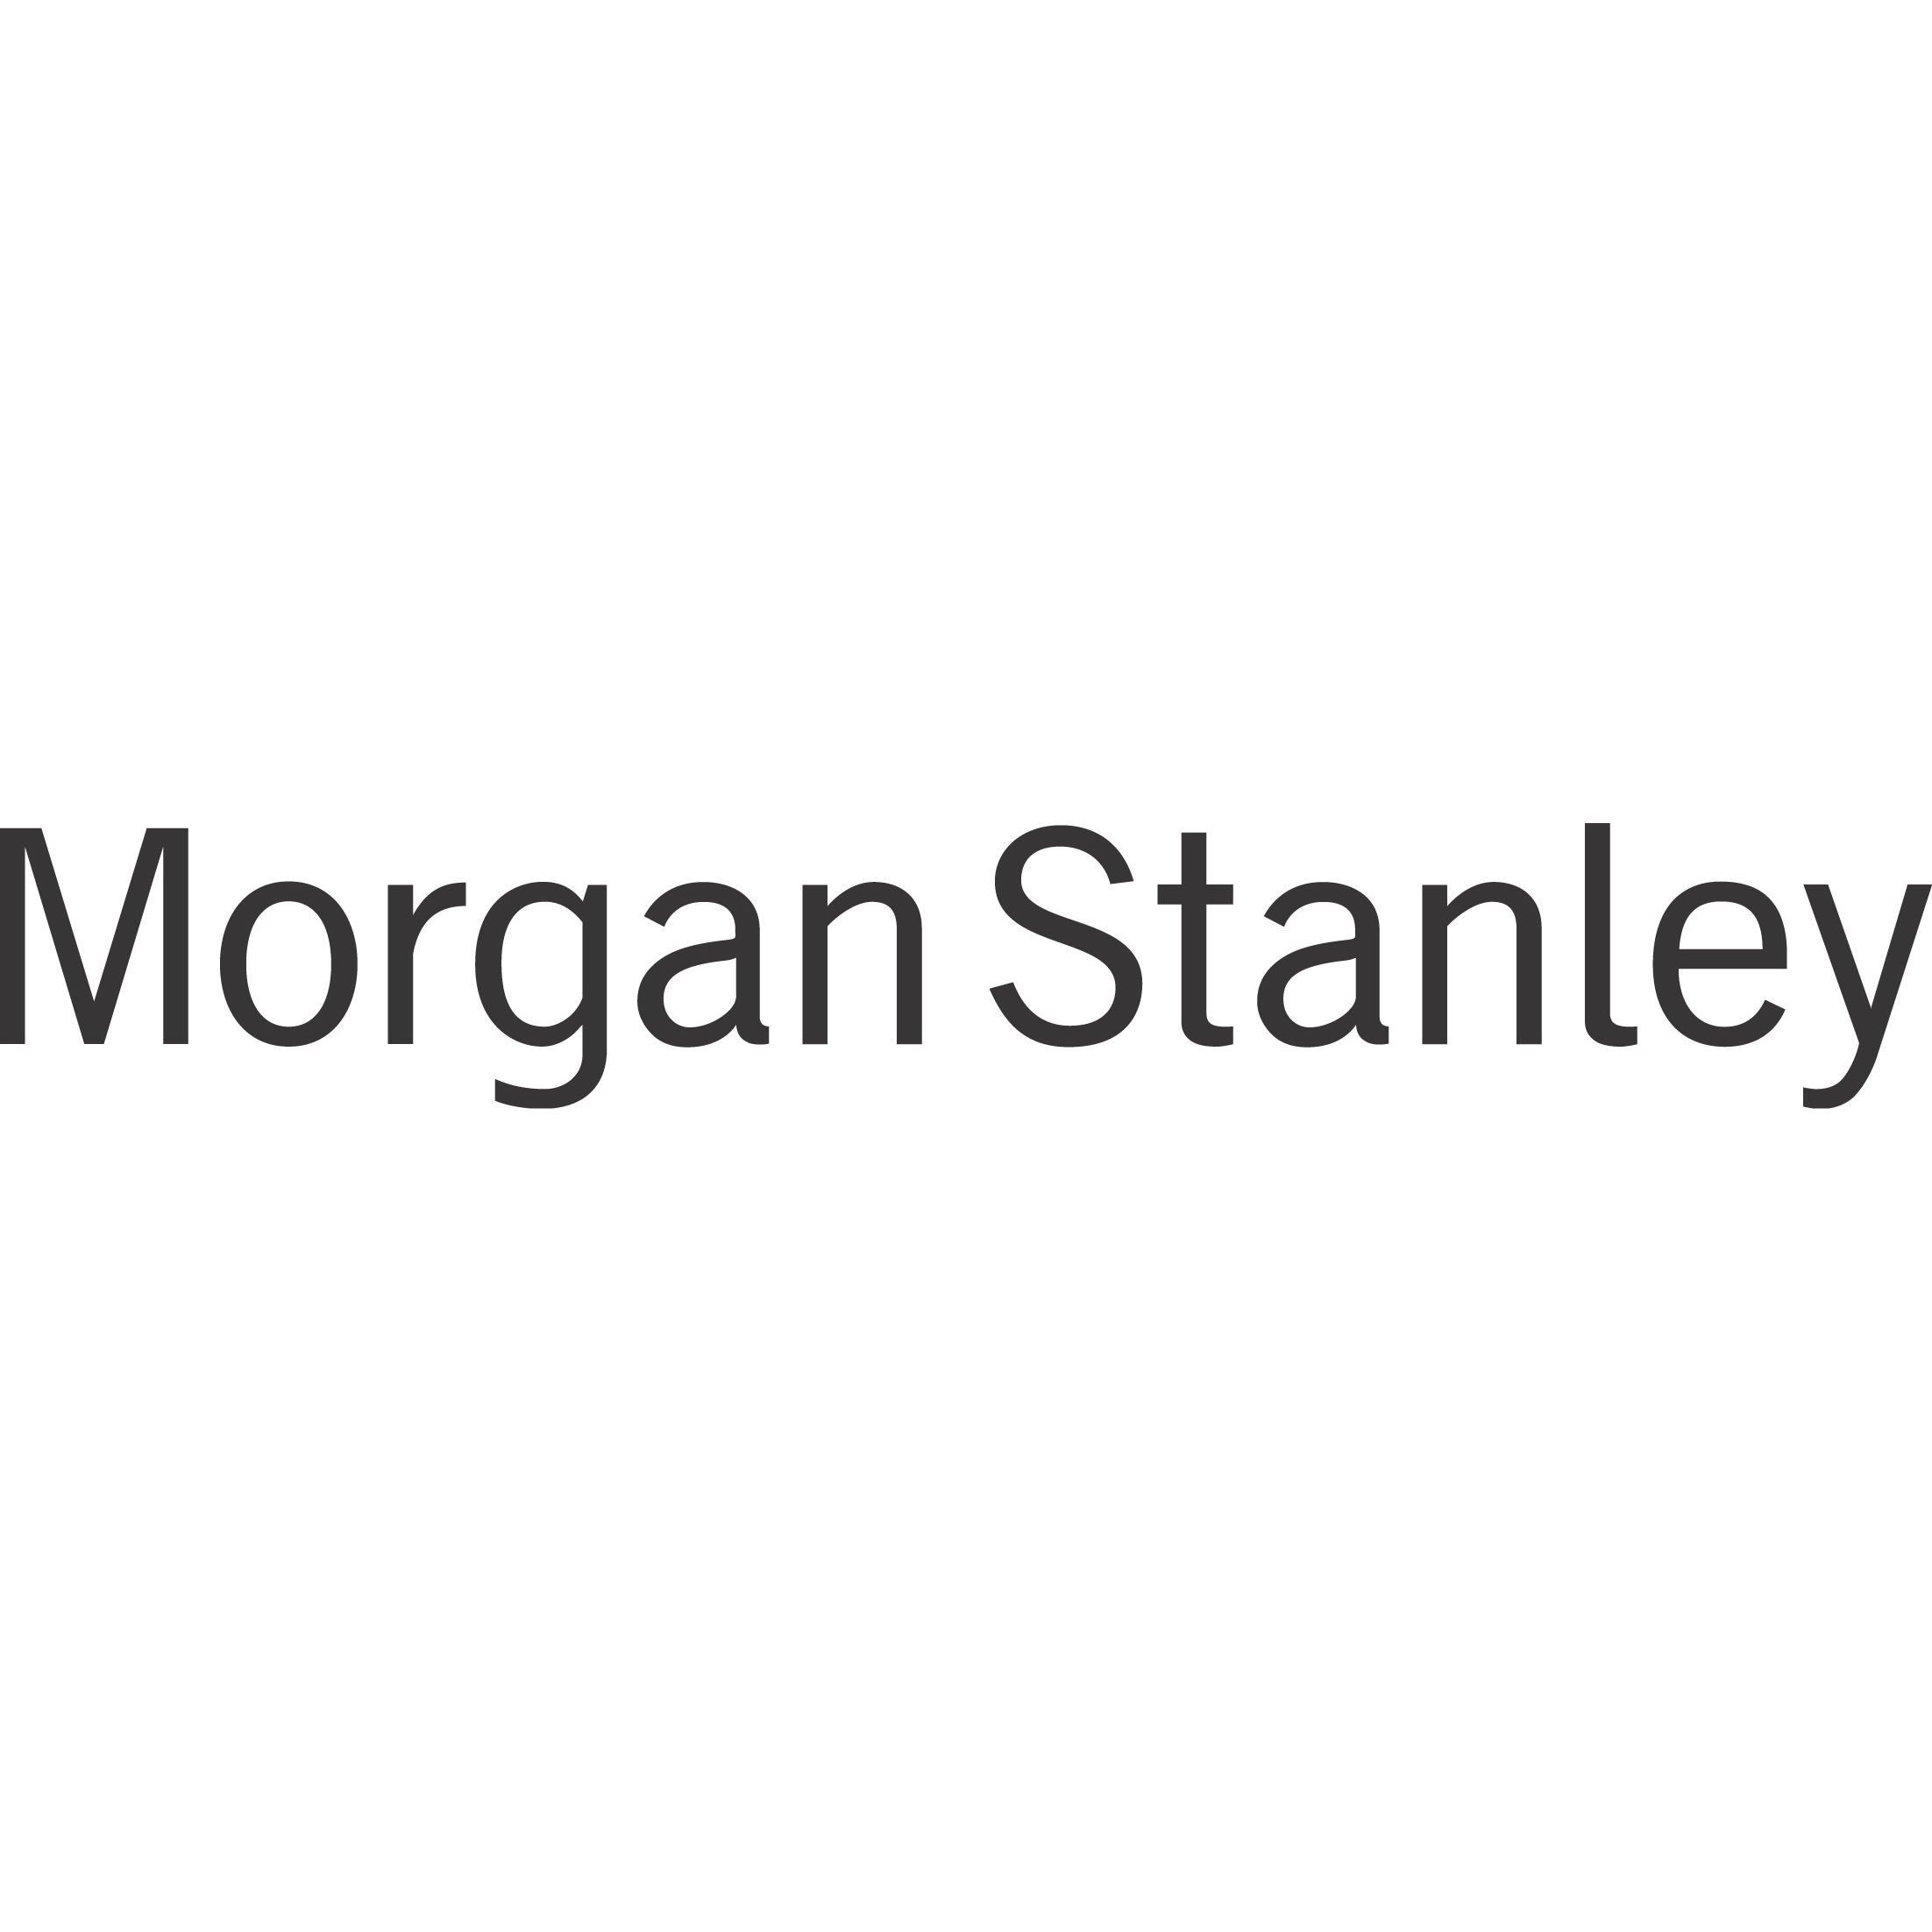 Al Zach - Morgan Stanley